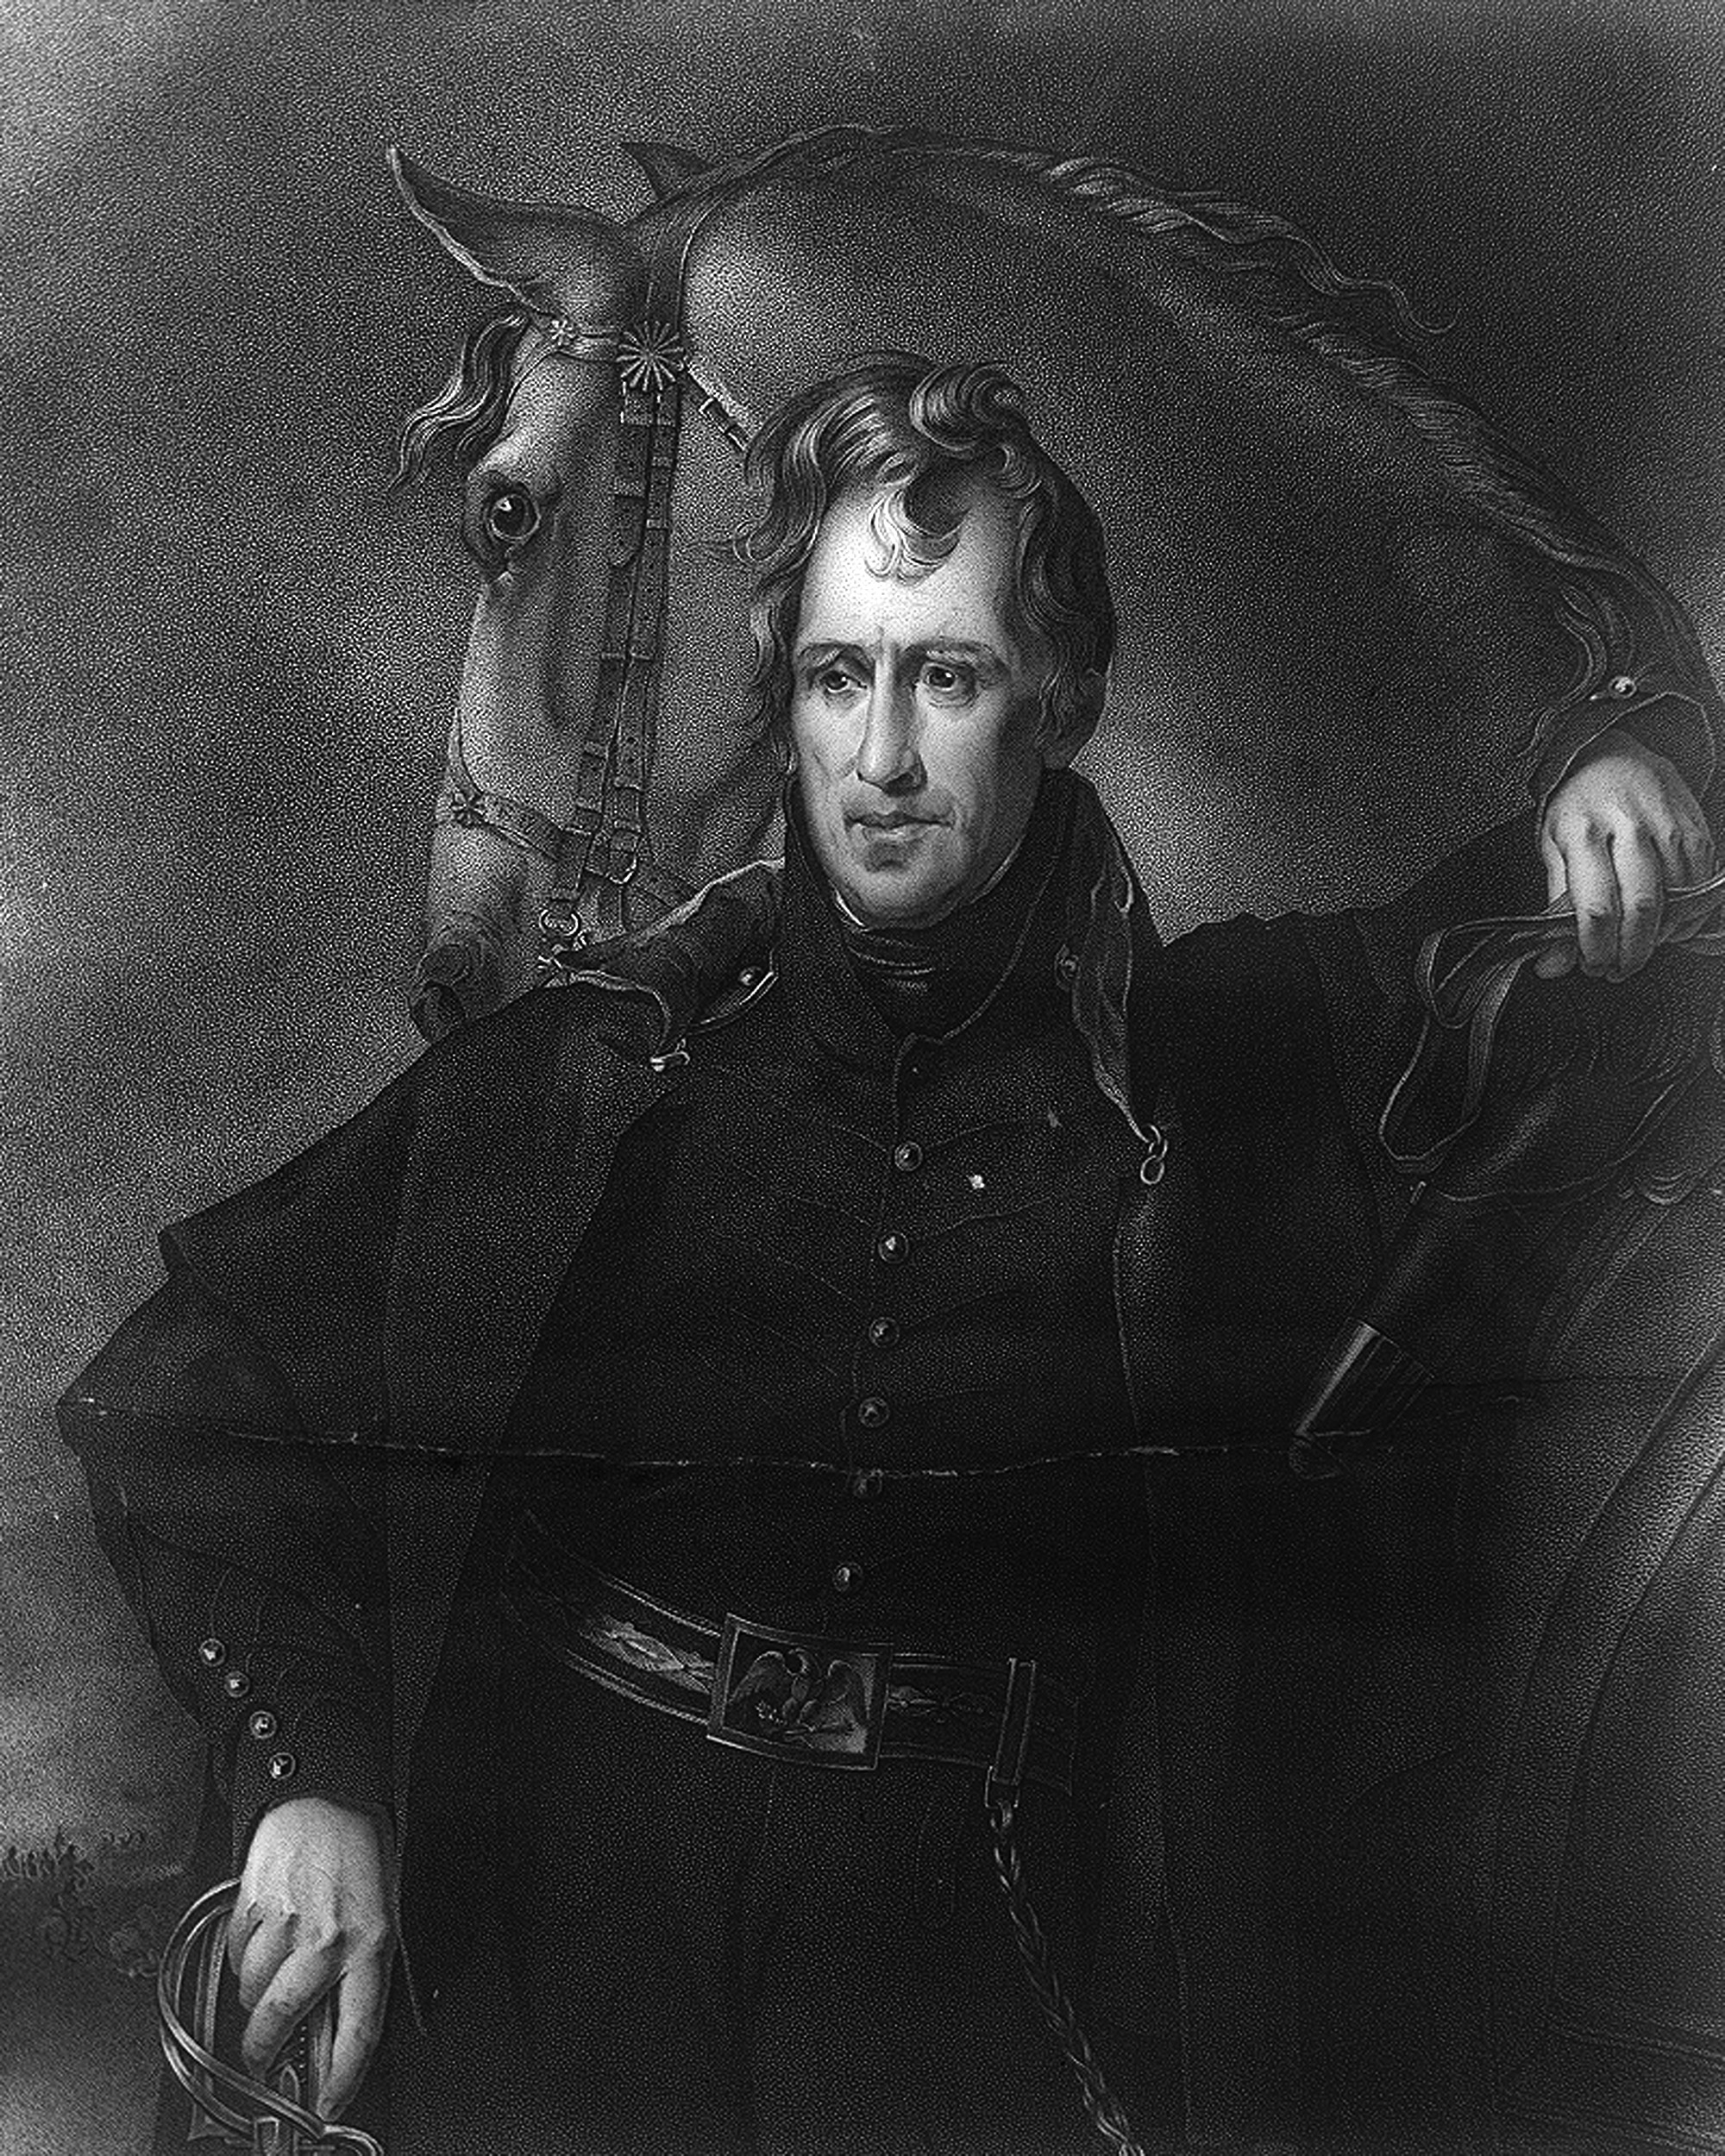 essays andrew jackson Andrew jackson a hero yes, no, maybe so andrew jackson was neither a hero nor a villain, but still deserves to be on the 20 dollar bill although andrew jackson did.